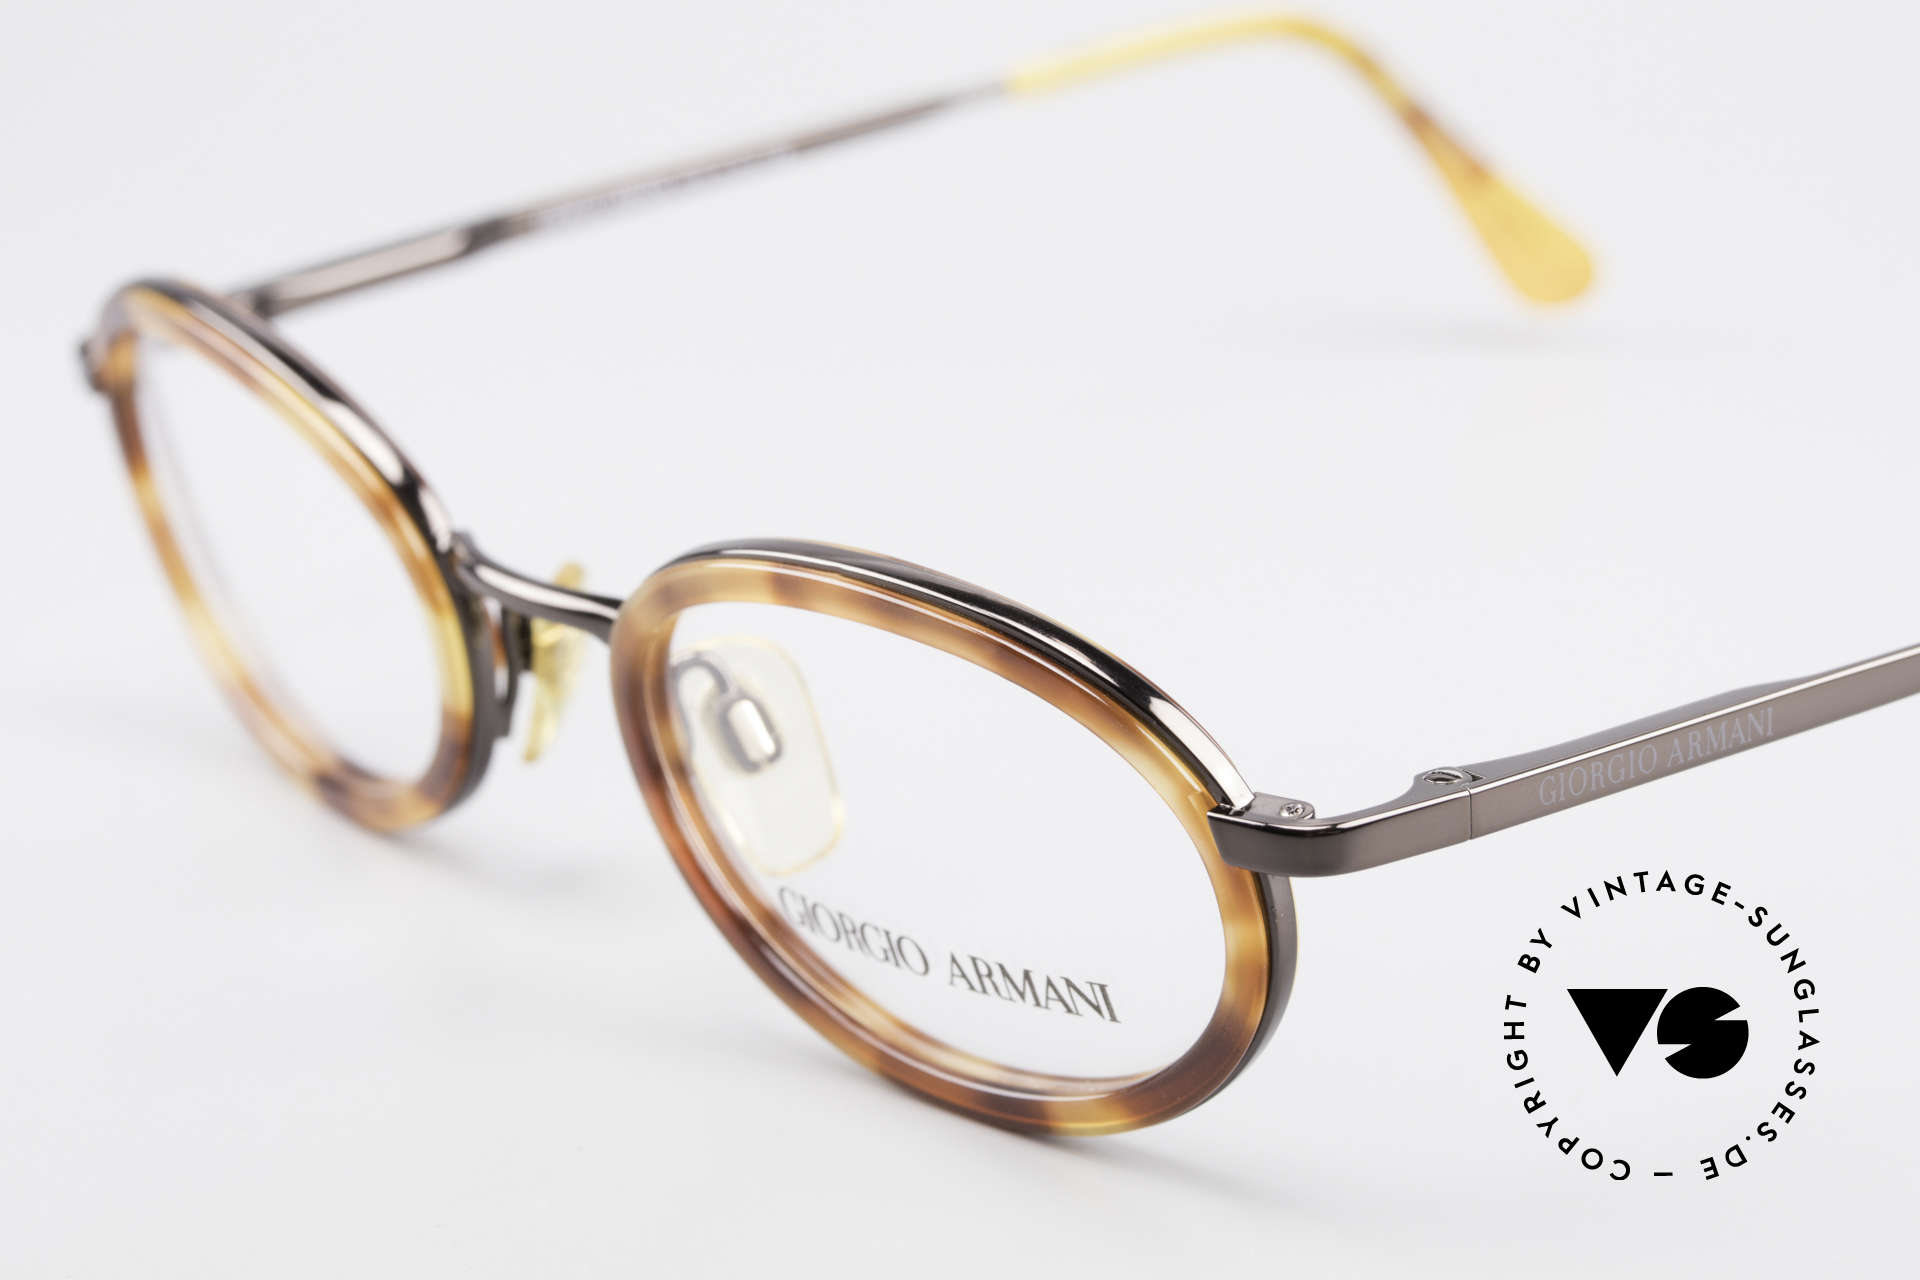 Giorgio Armani 258 90's Oval Vintage Eyeglasses, unworn rarity (like all our rare vintage GA eyeglasses), Made for Men and Women